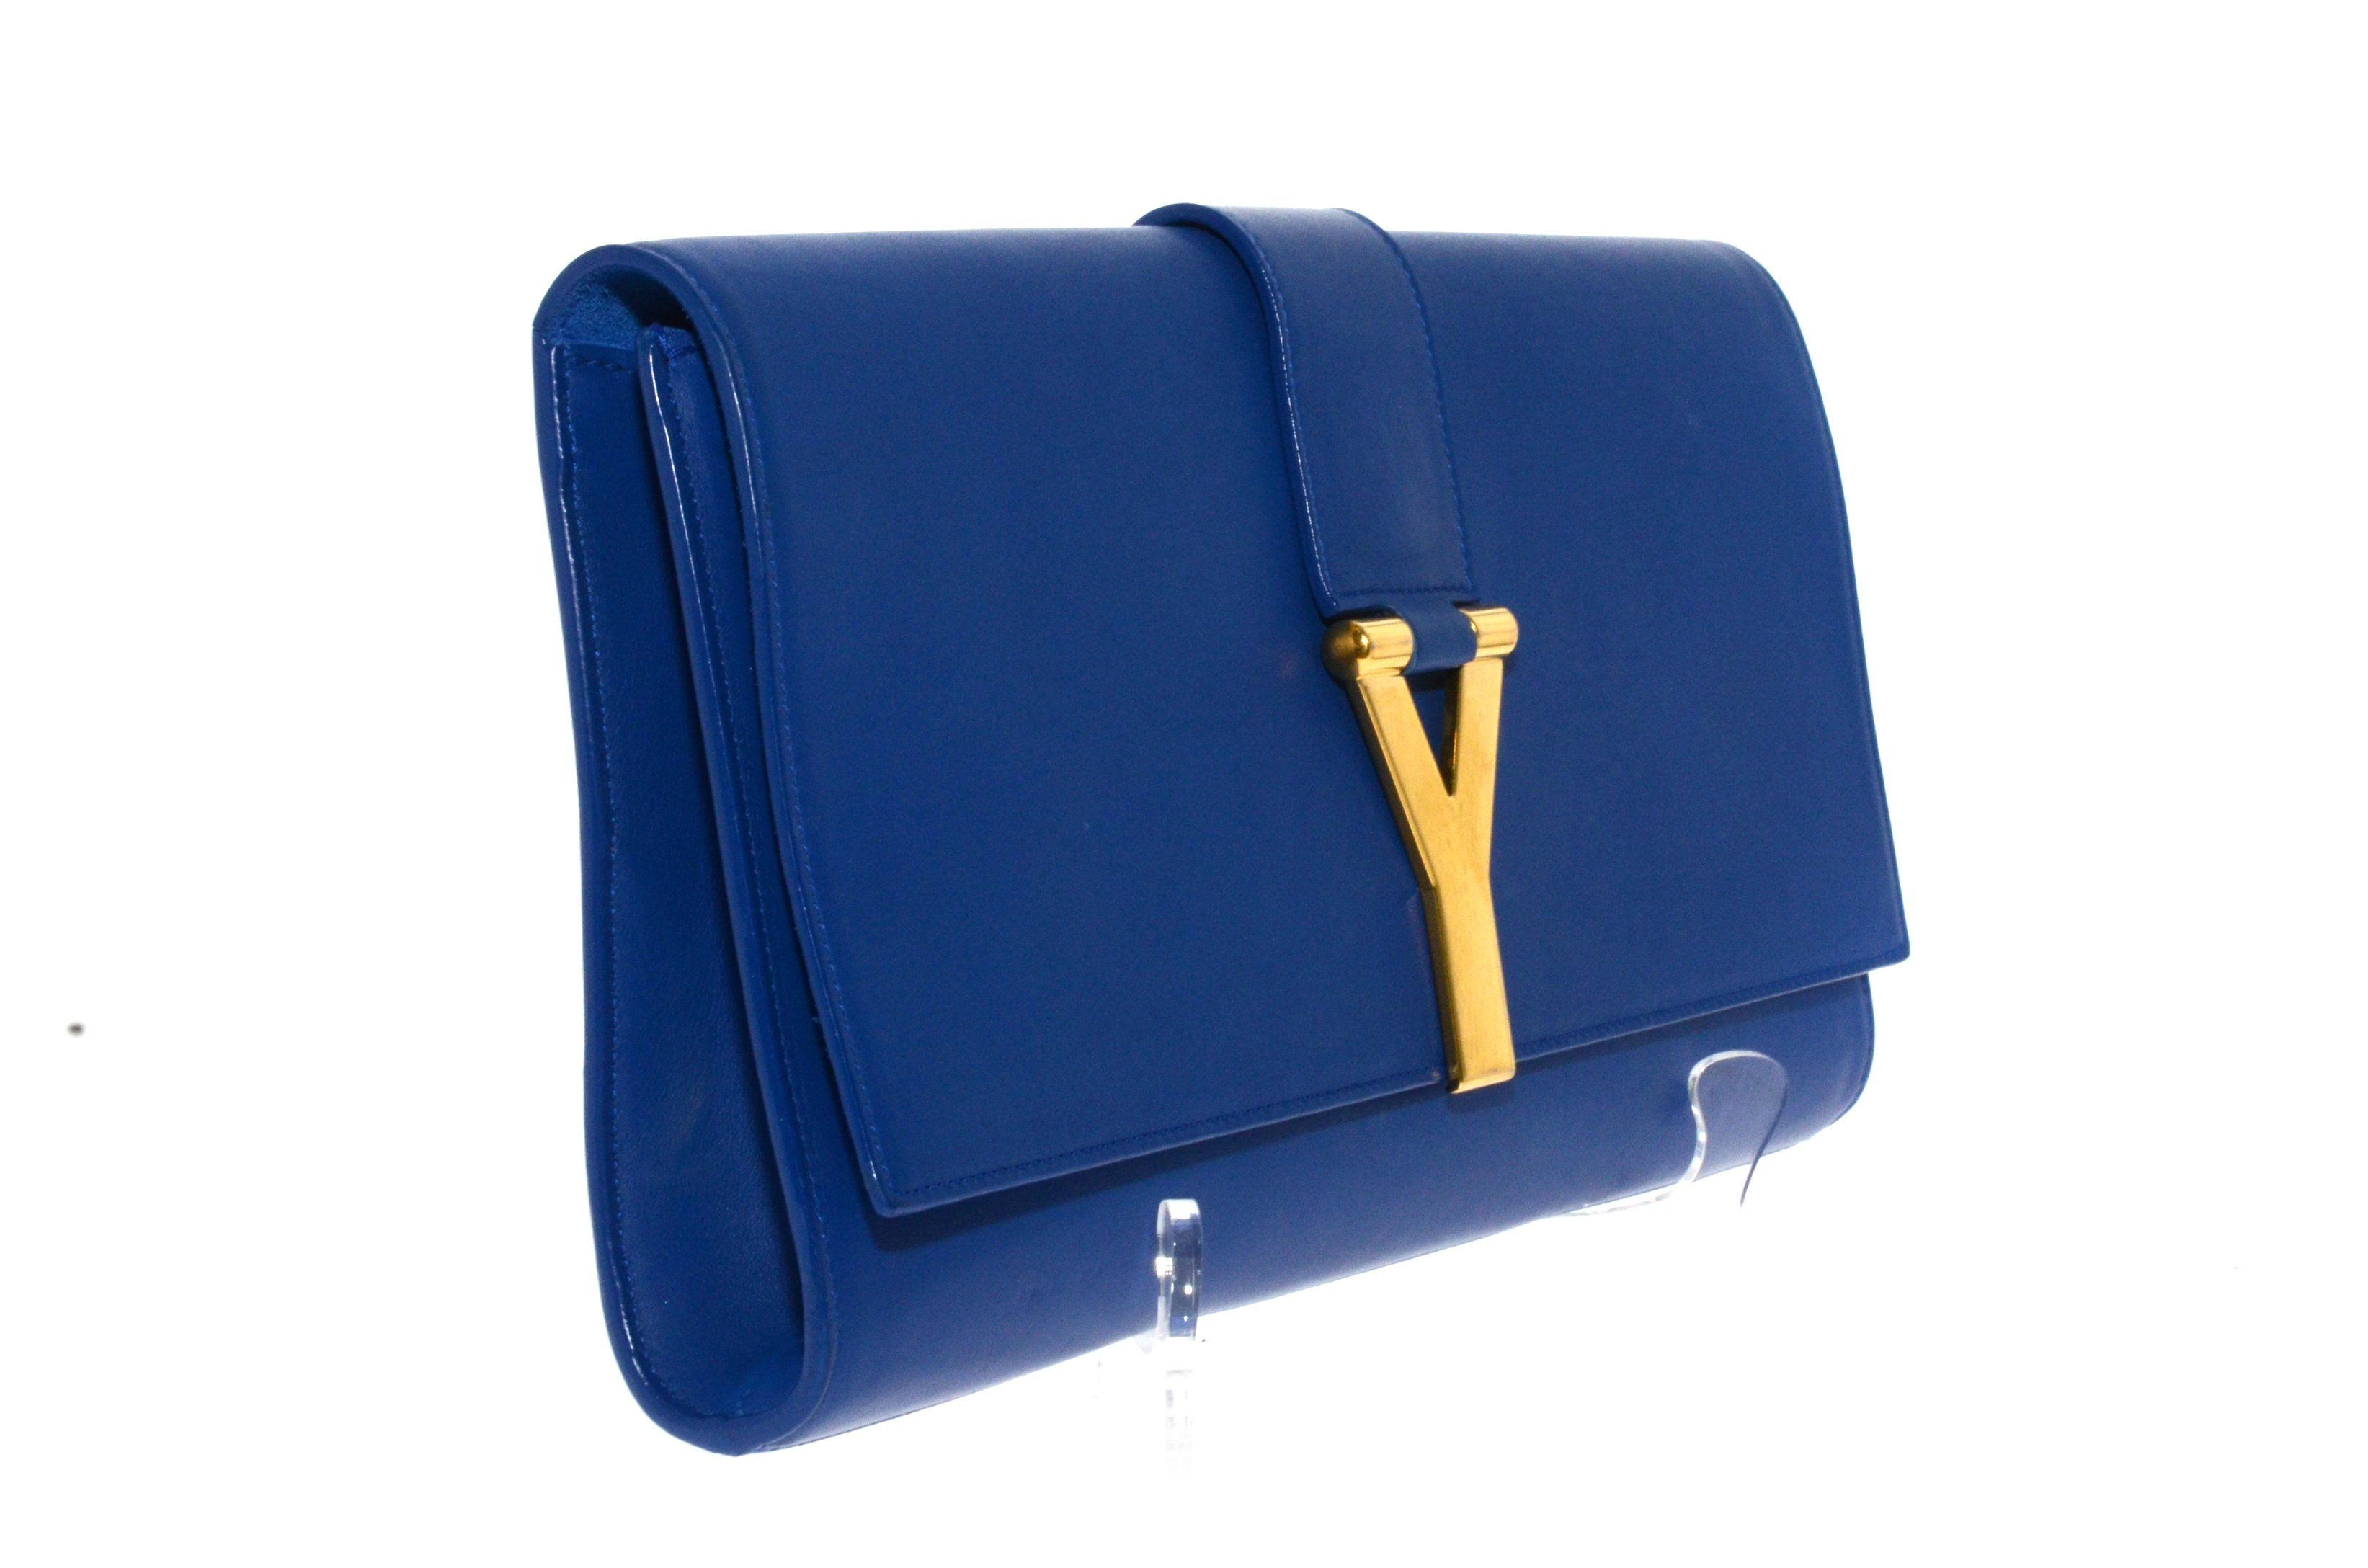 12c9bbf634d Yves Saint Laurent Royal Blue Leather Clutch. – The Vintage Contessa ...